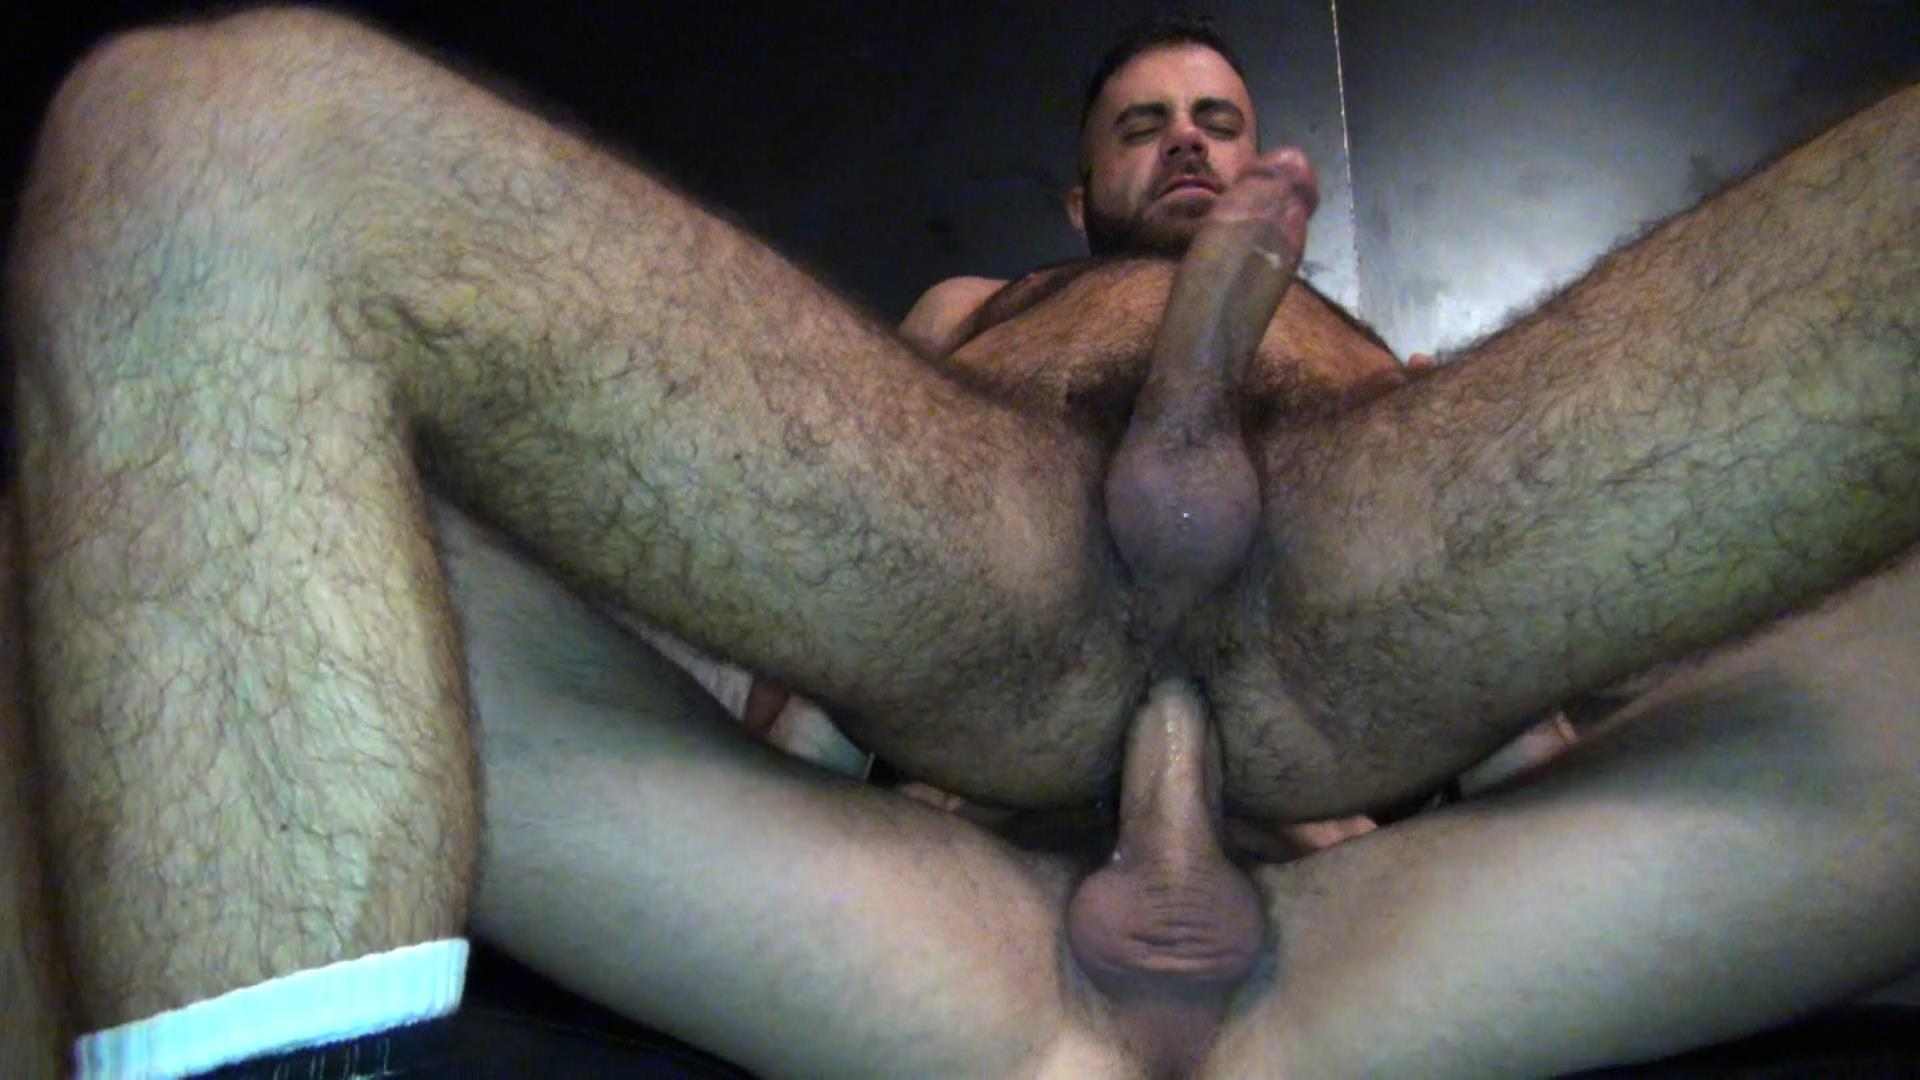 Raw-Fuck-Club-Max-Cameron-and-Markus-Isaacs-Hairy-Muscle-Bareback-Breeding-BBBH-Amateur-Gay-Porn-1 Max Cameron and Markus Isaacs Breeding Each Other's Hairy Ass